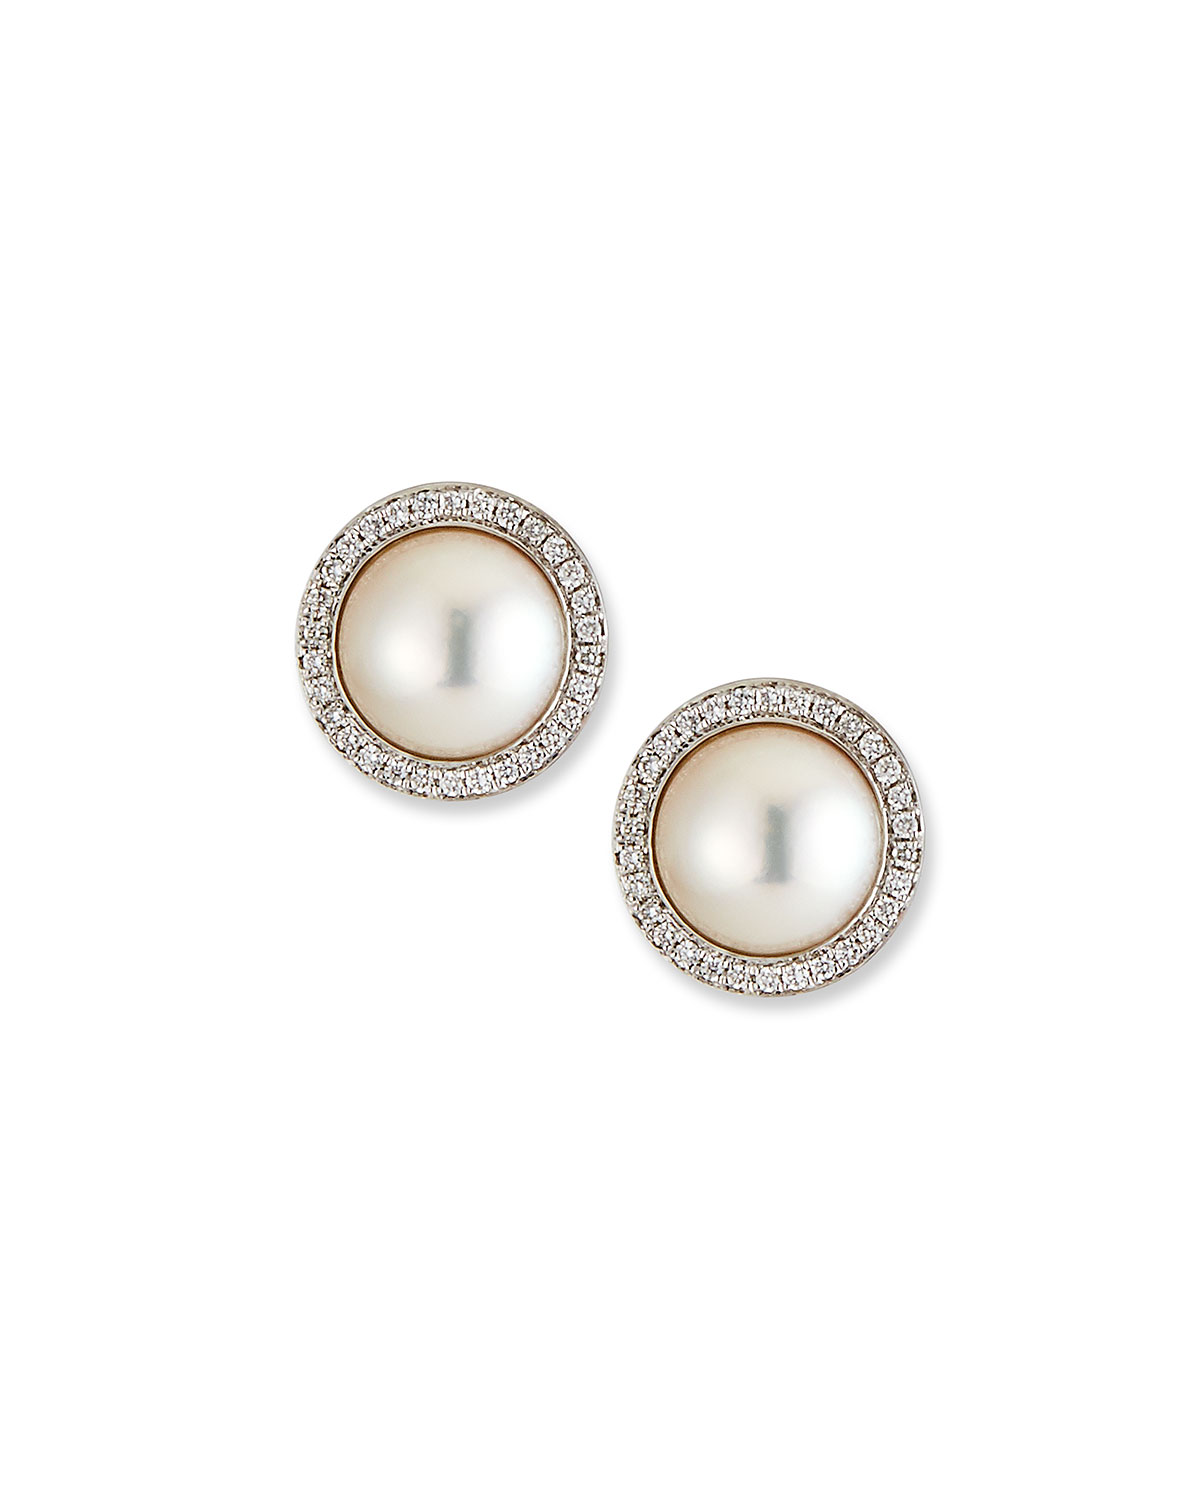 Belpearl 18k White Gold Pearl-Stud Diamond-Halo Earrings